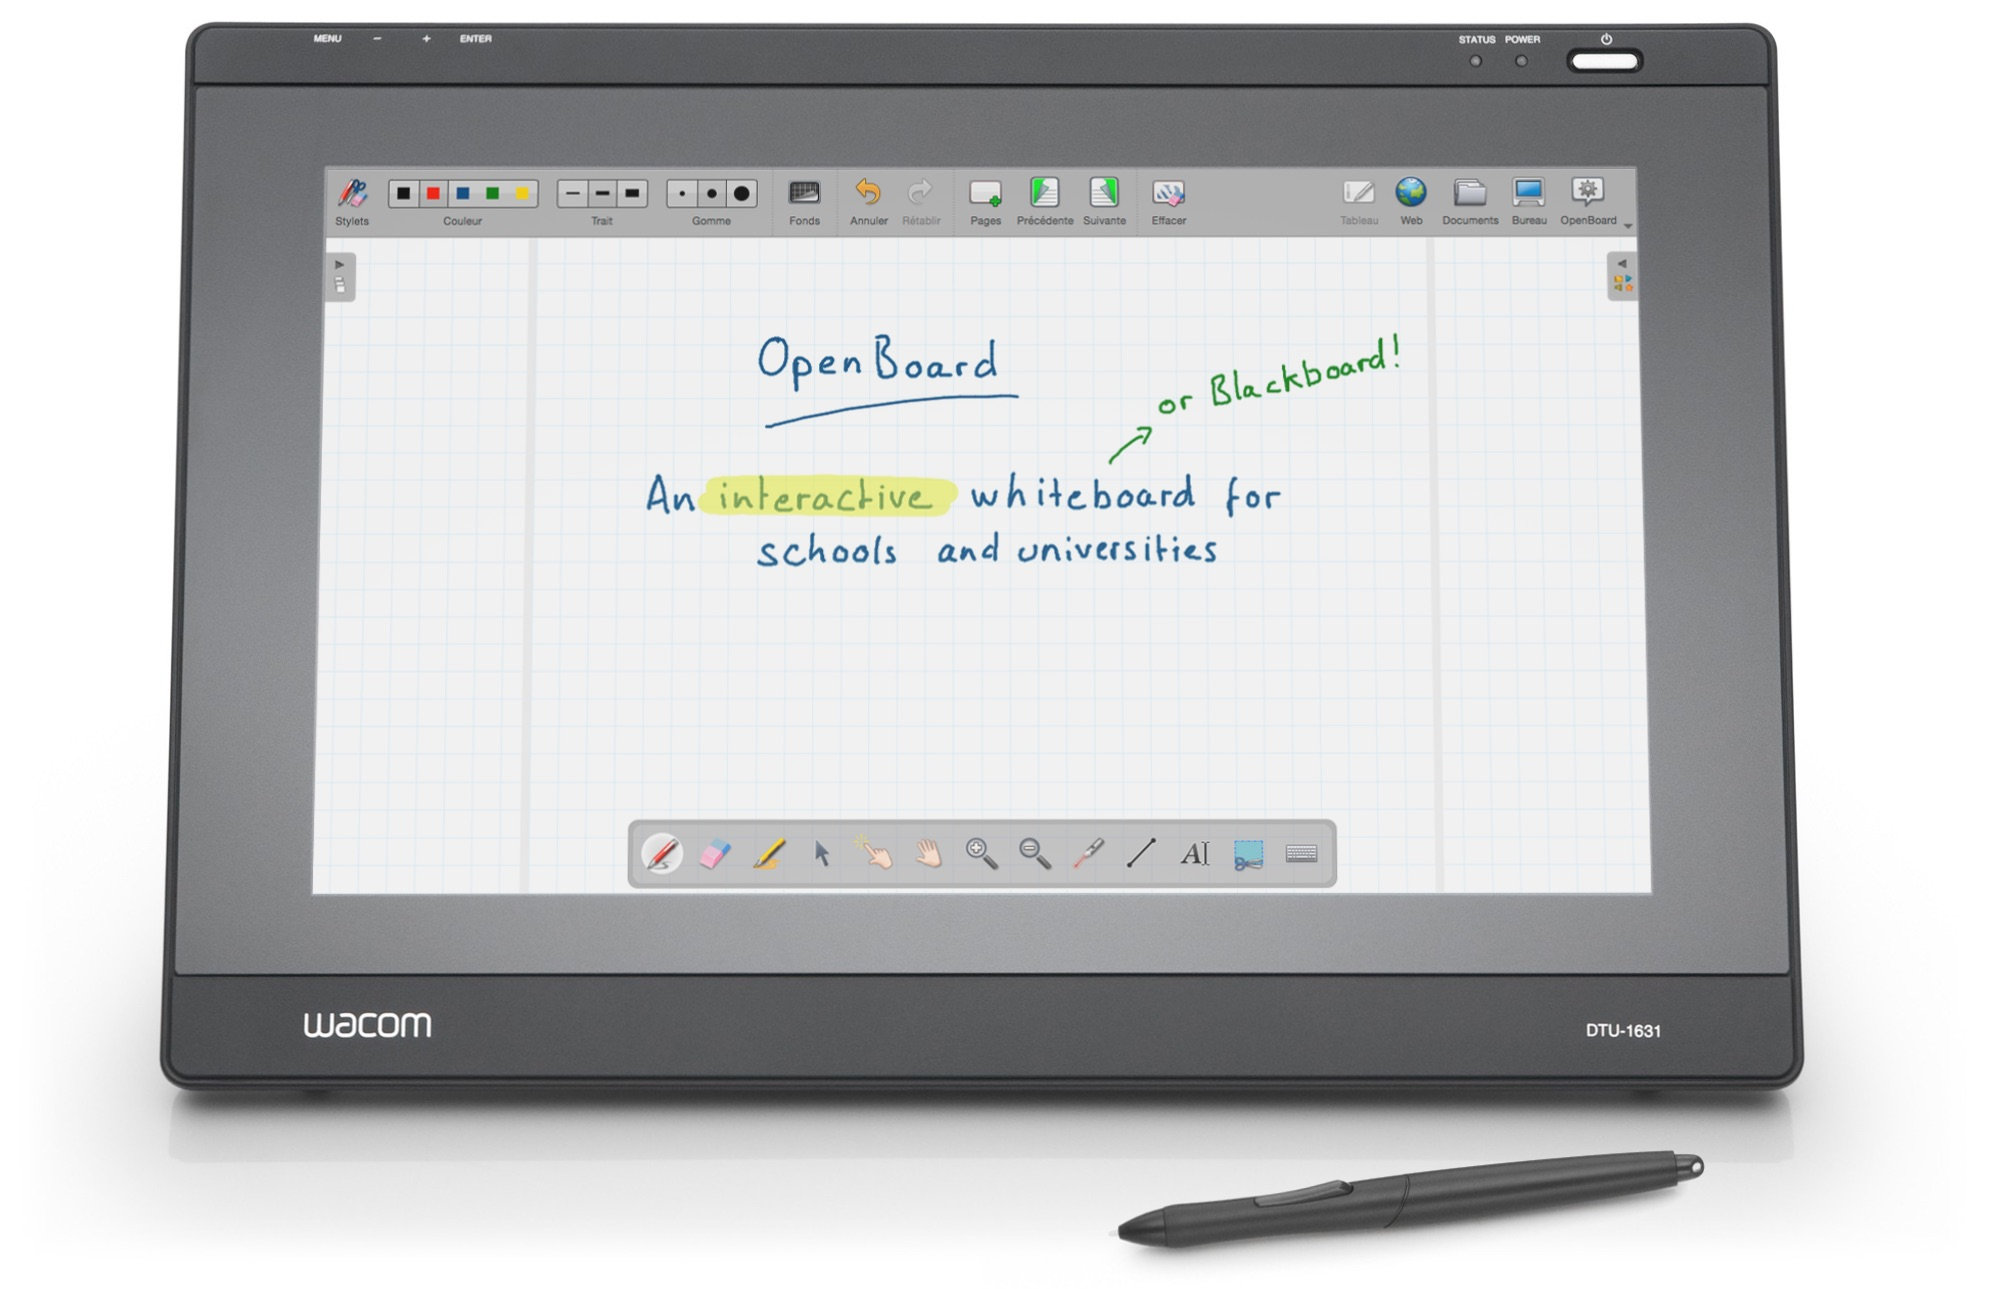 openboard the best interactive whiteboard for schools and universities